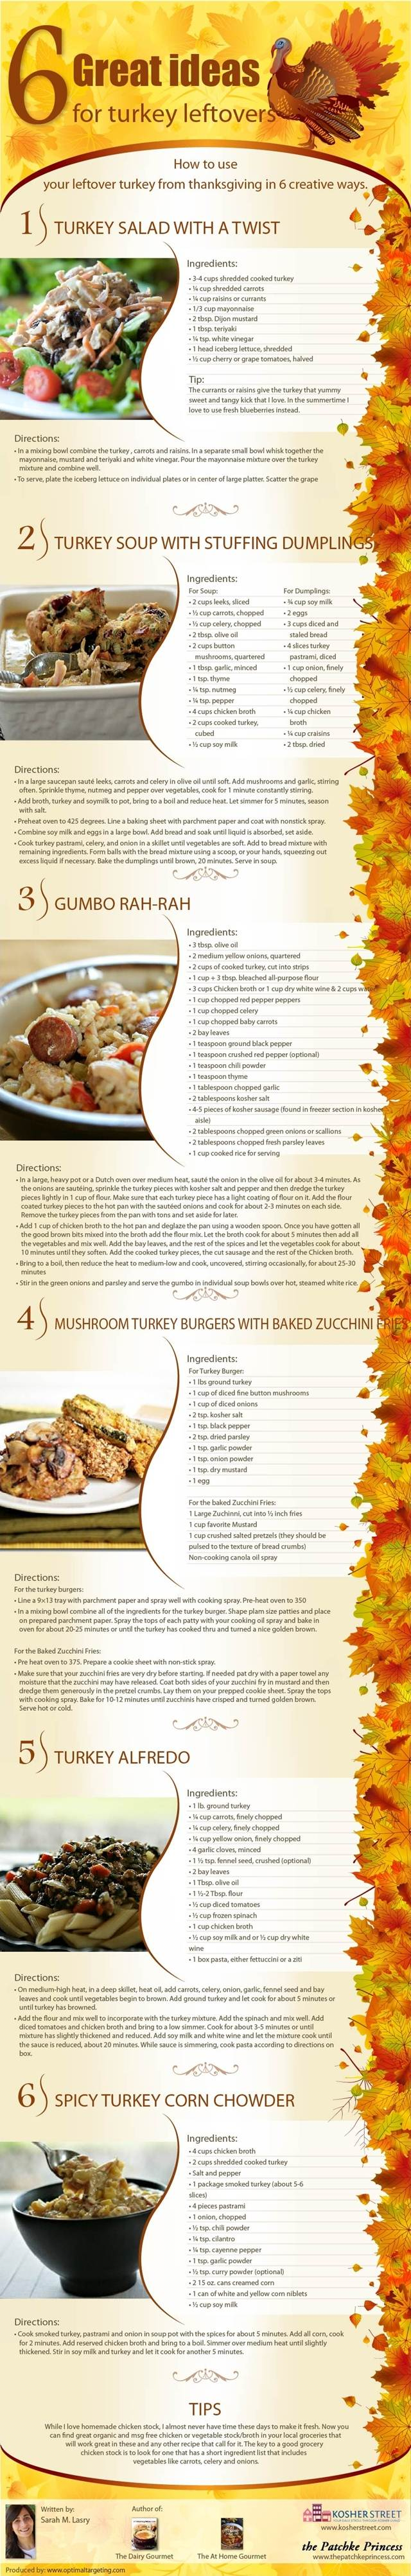 Infographic Outining Six Great Ways to Eat Turkey Leftovers